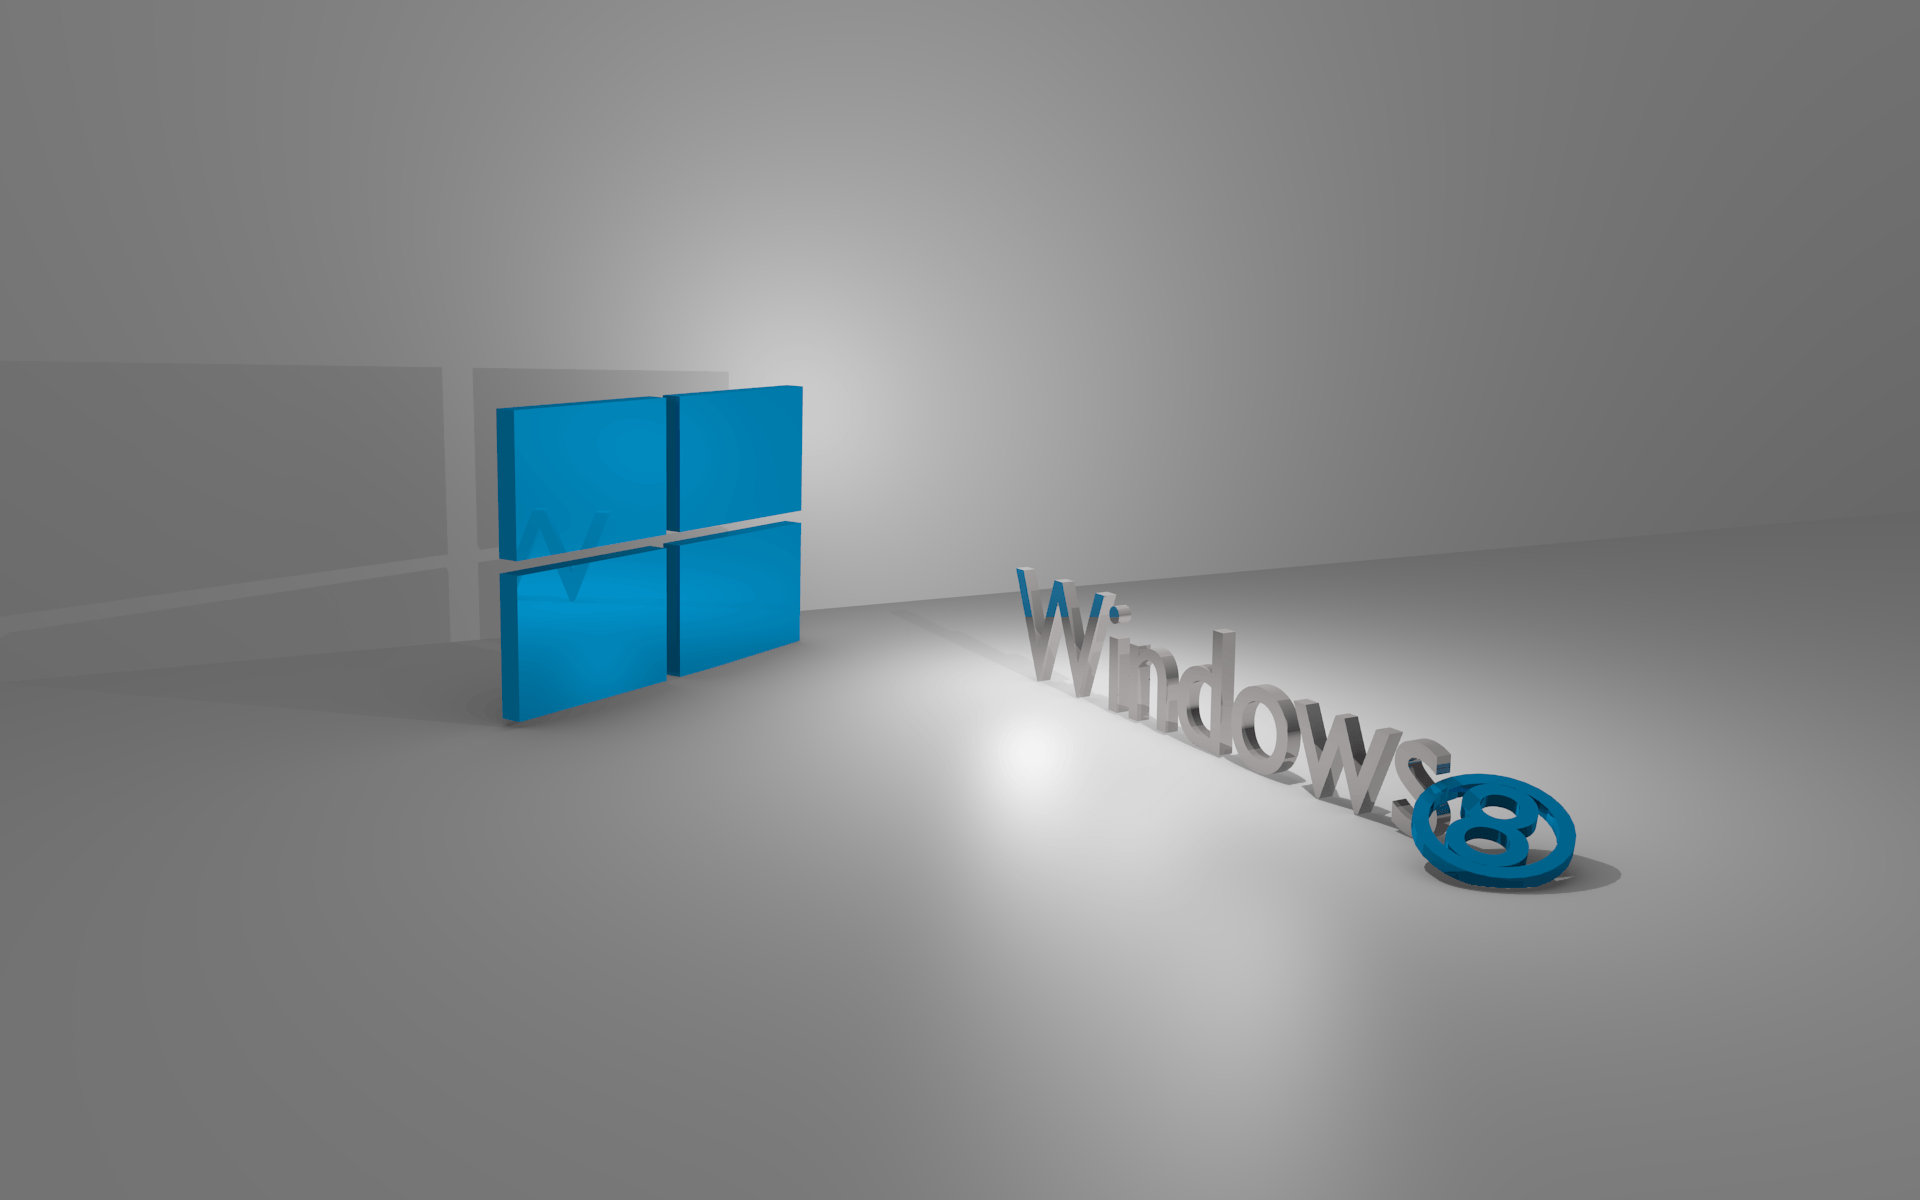 windows 10 3d - photo #39